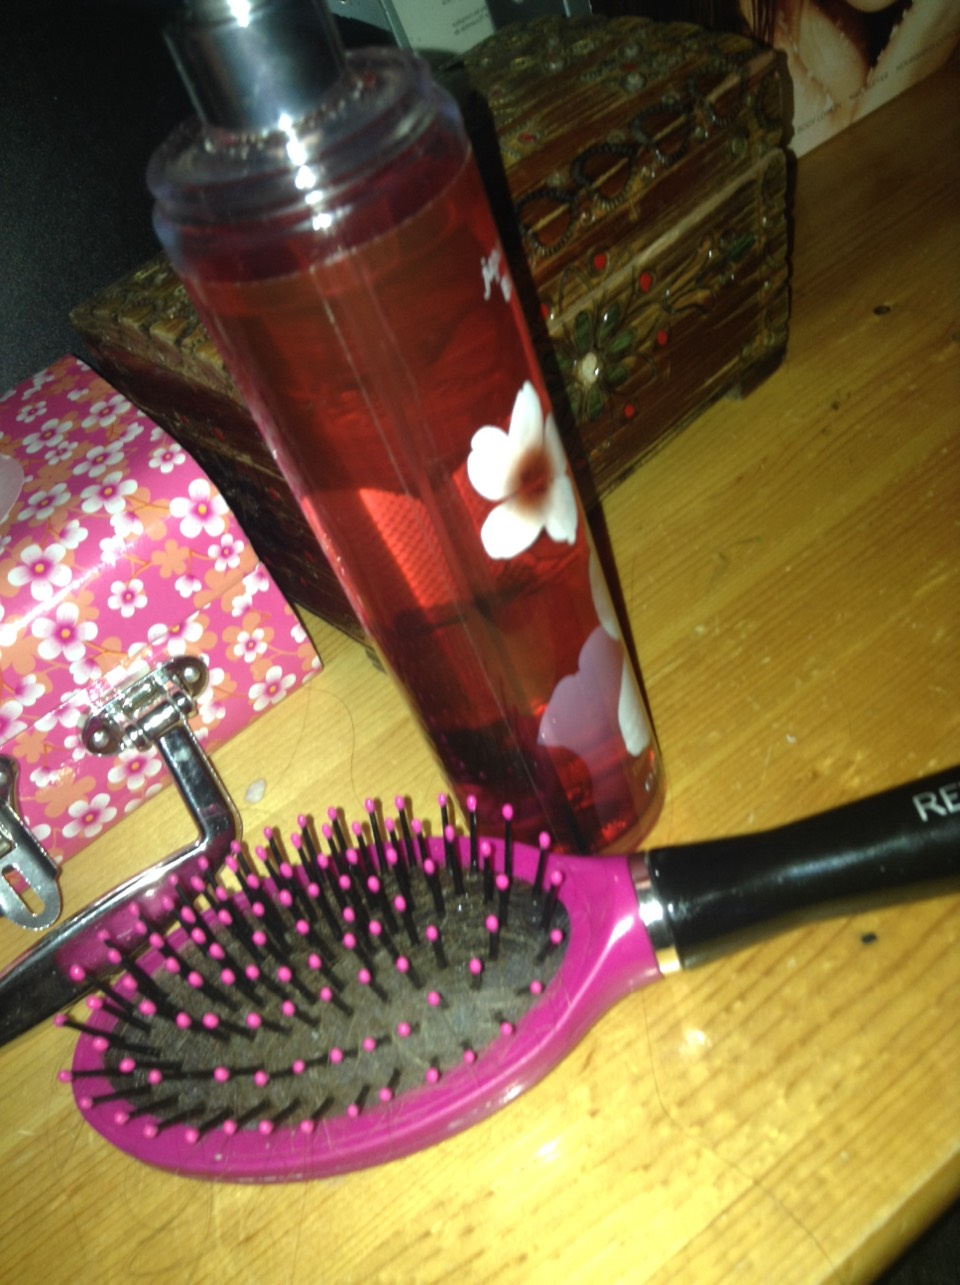 Brush through your hair and your hair smells nice